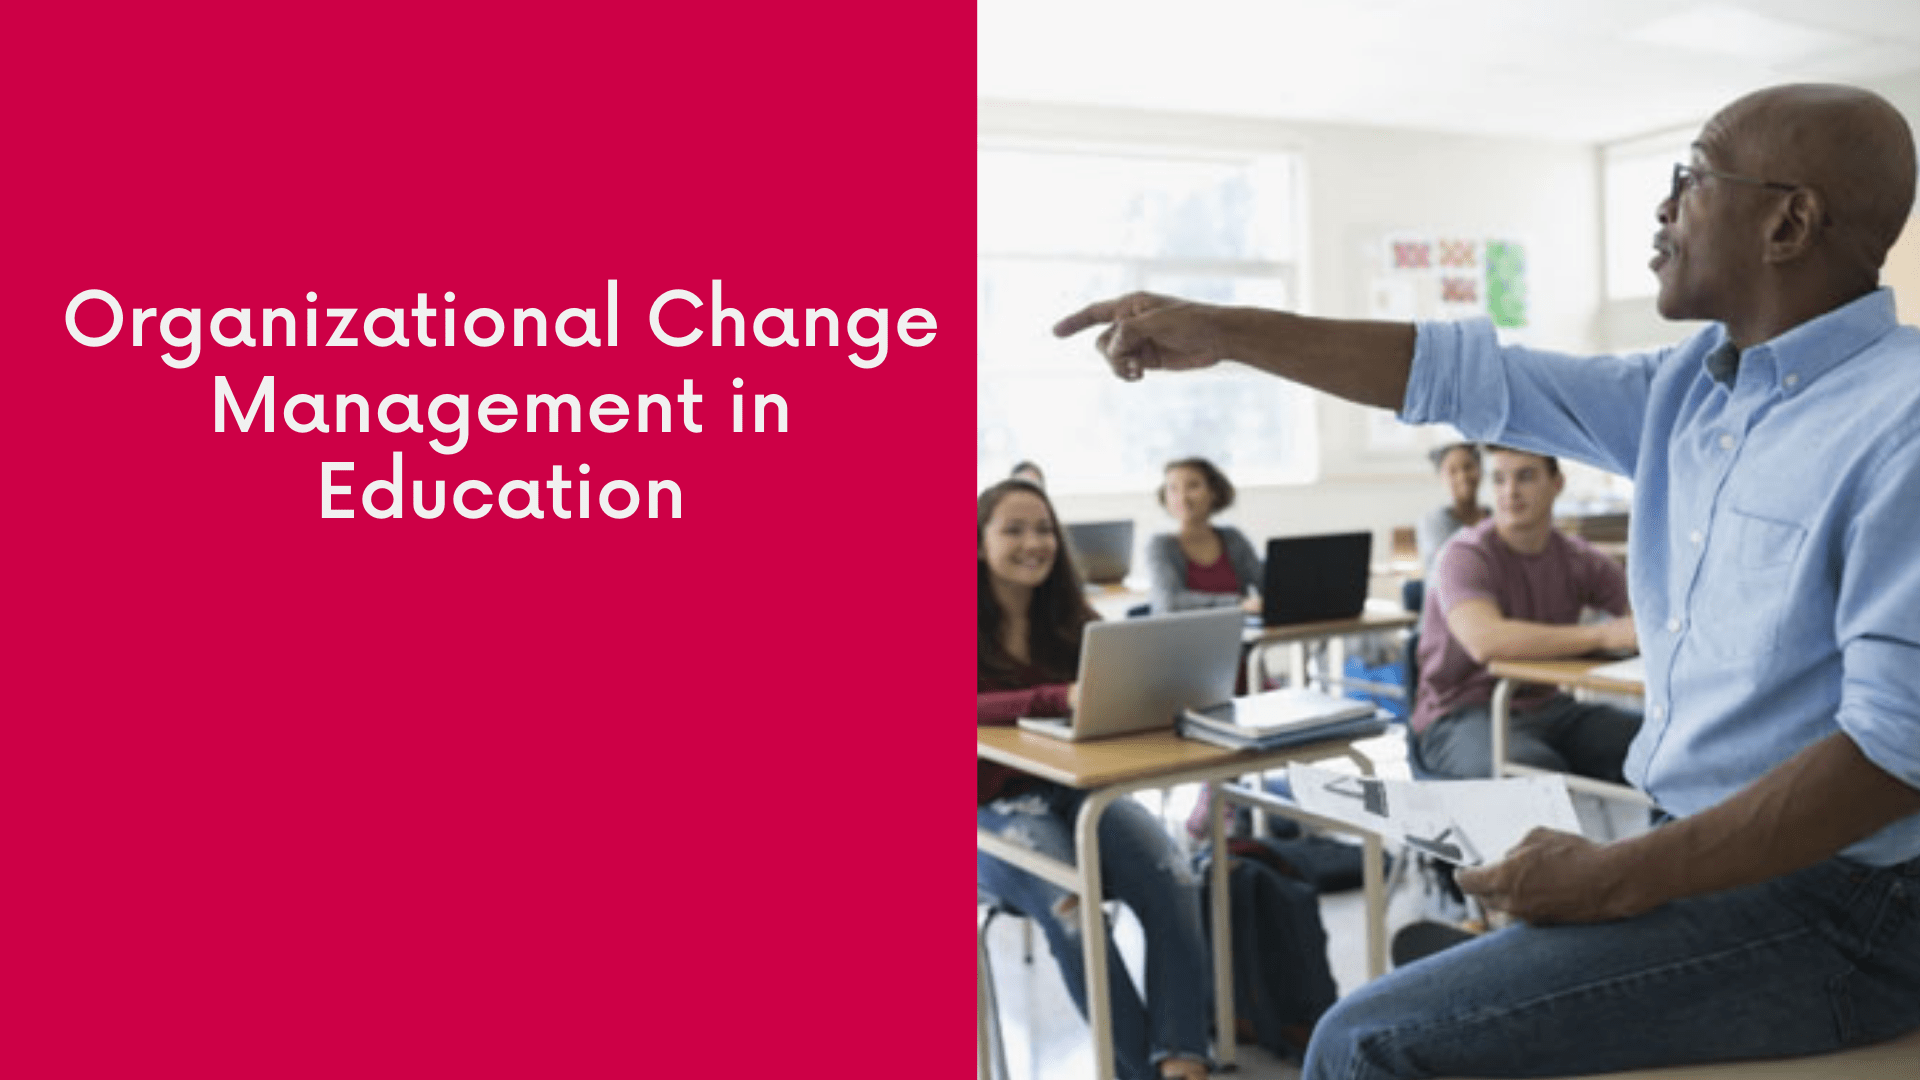 Organizational Change Management in Education